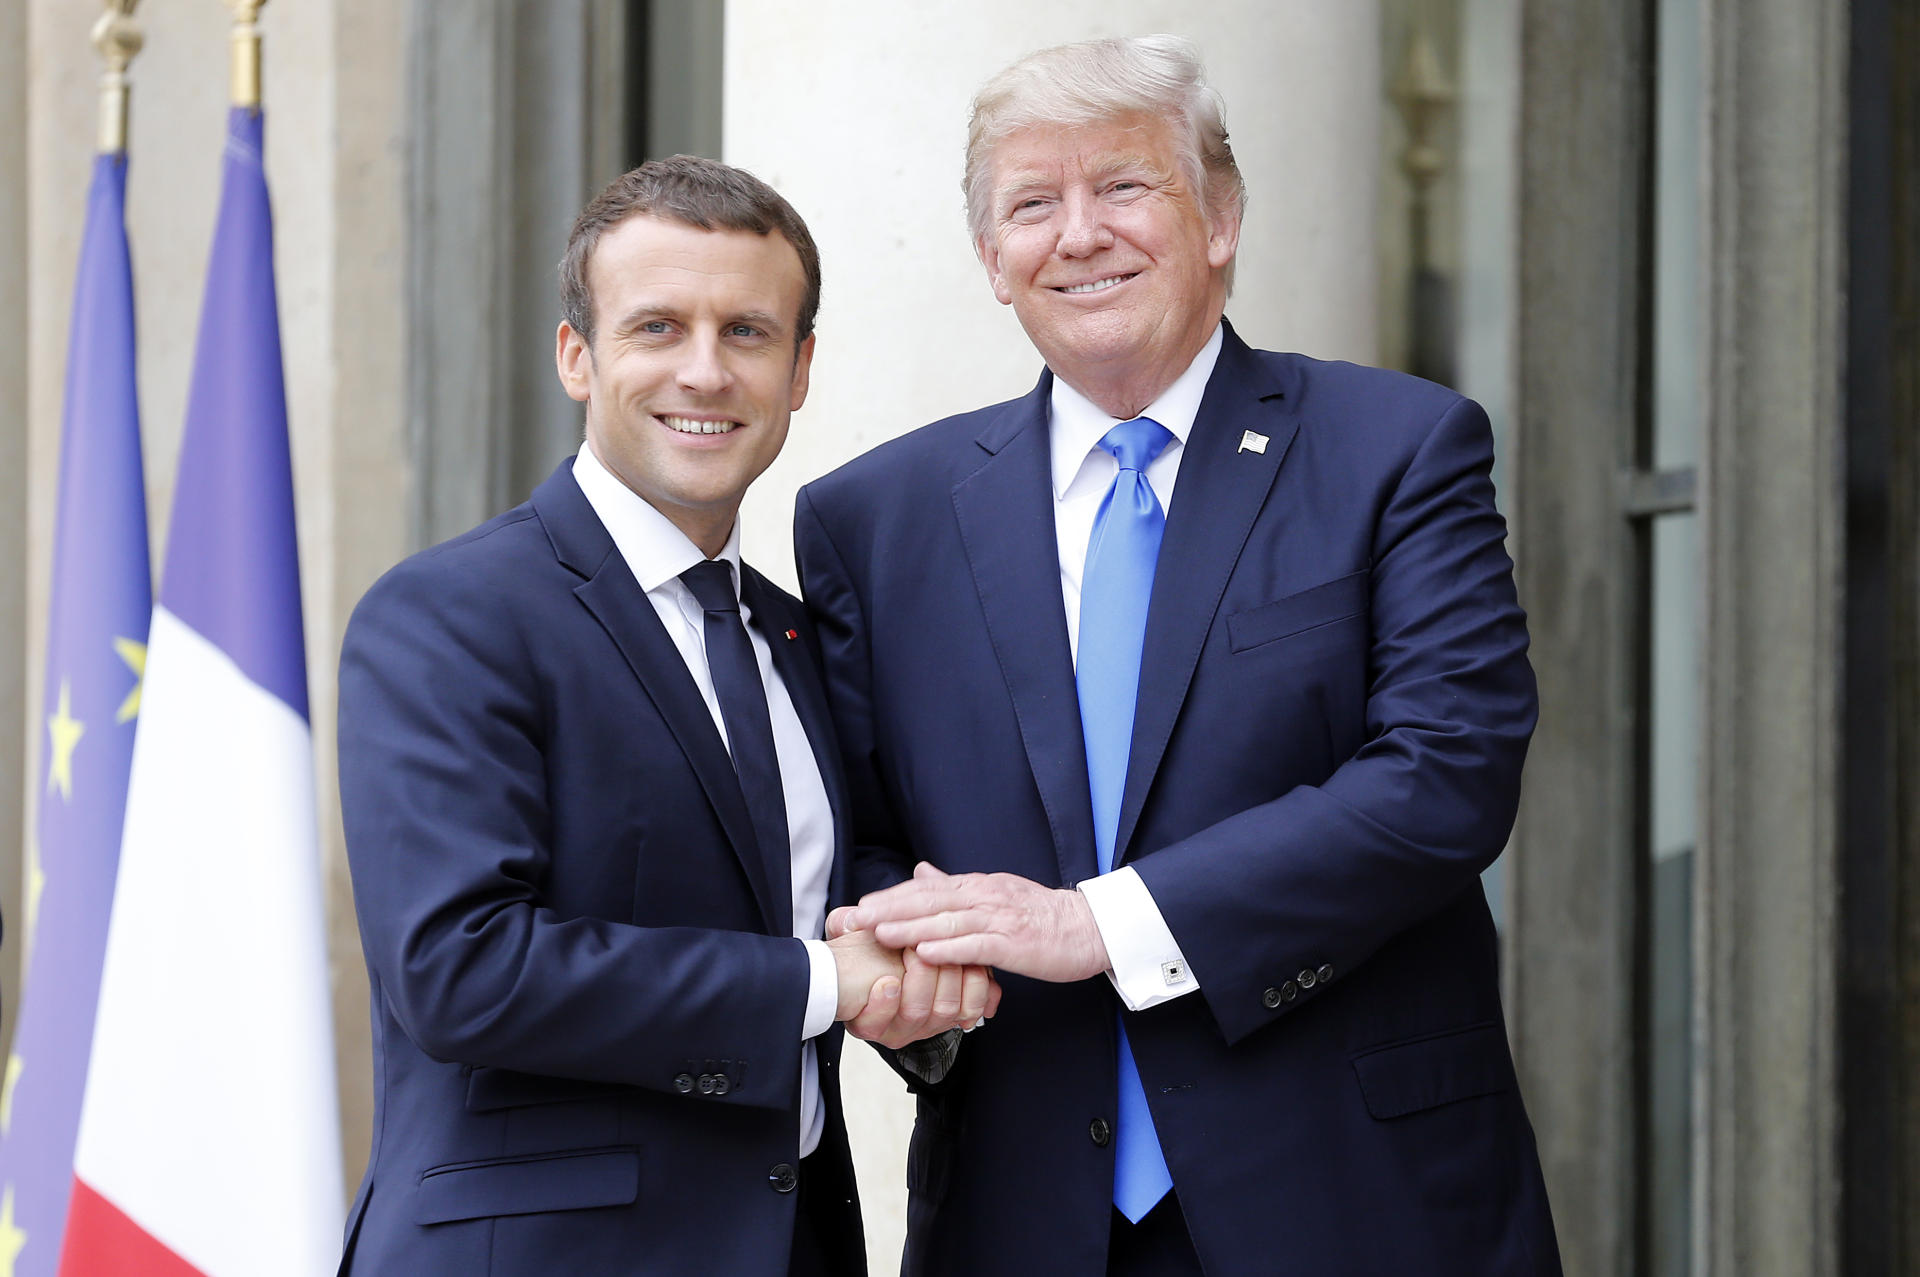 Trump agreed with Macron's offer to invite Russia to G7 Summit in US in 2020